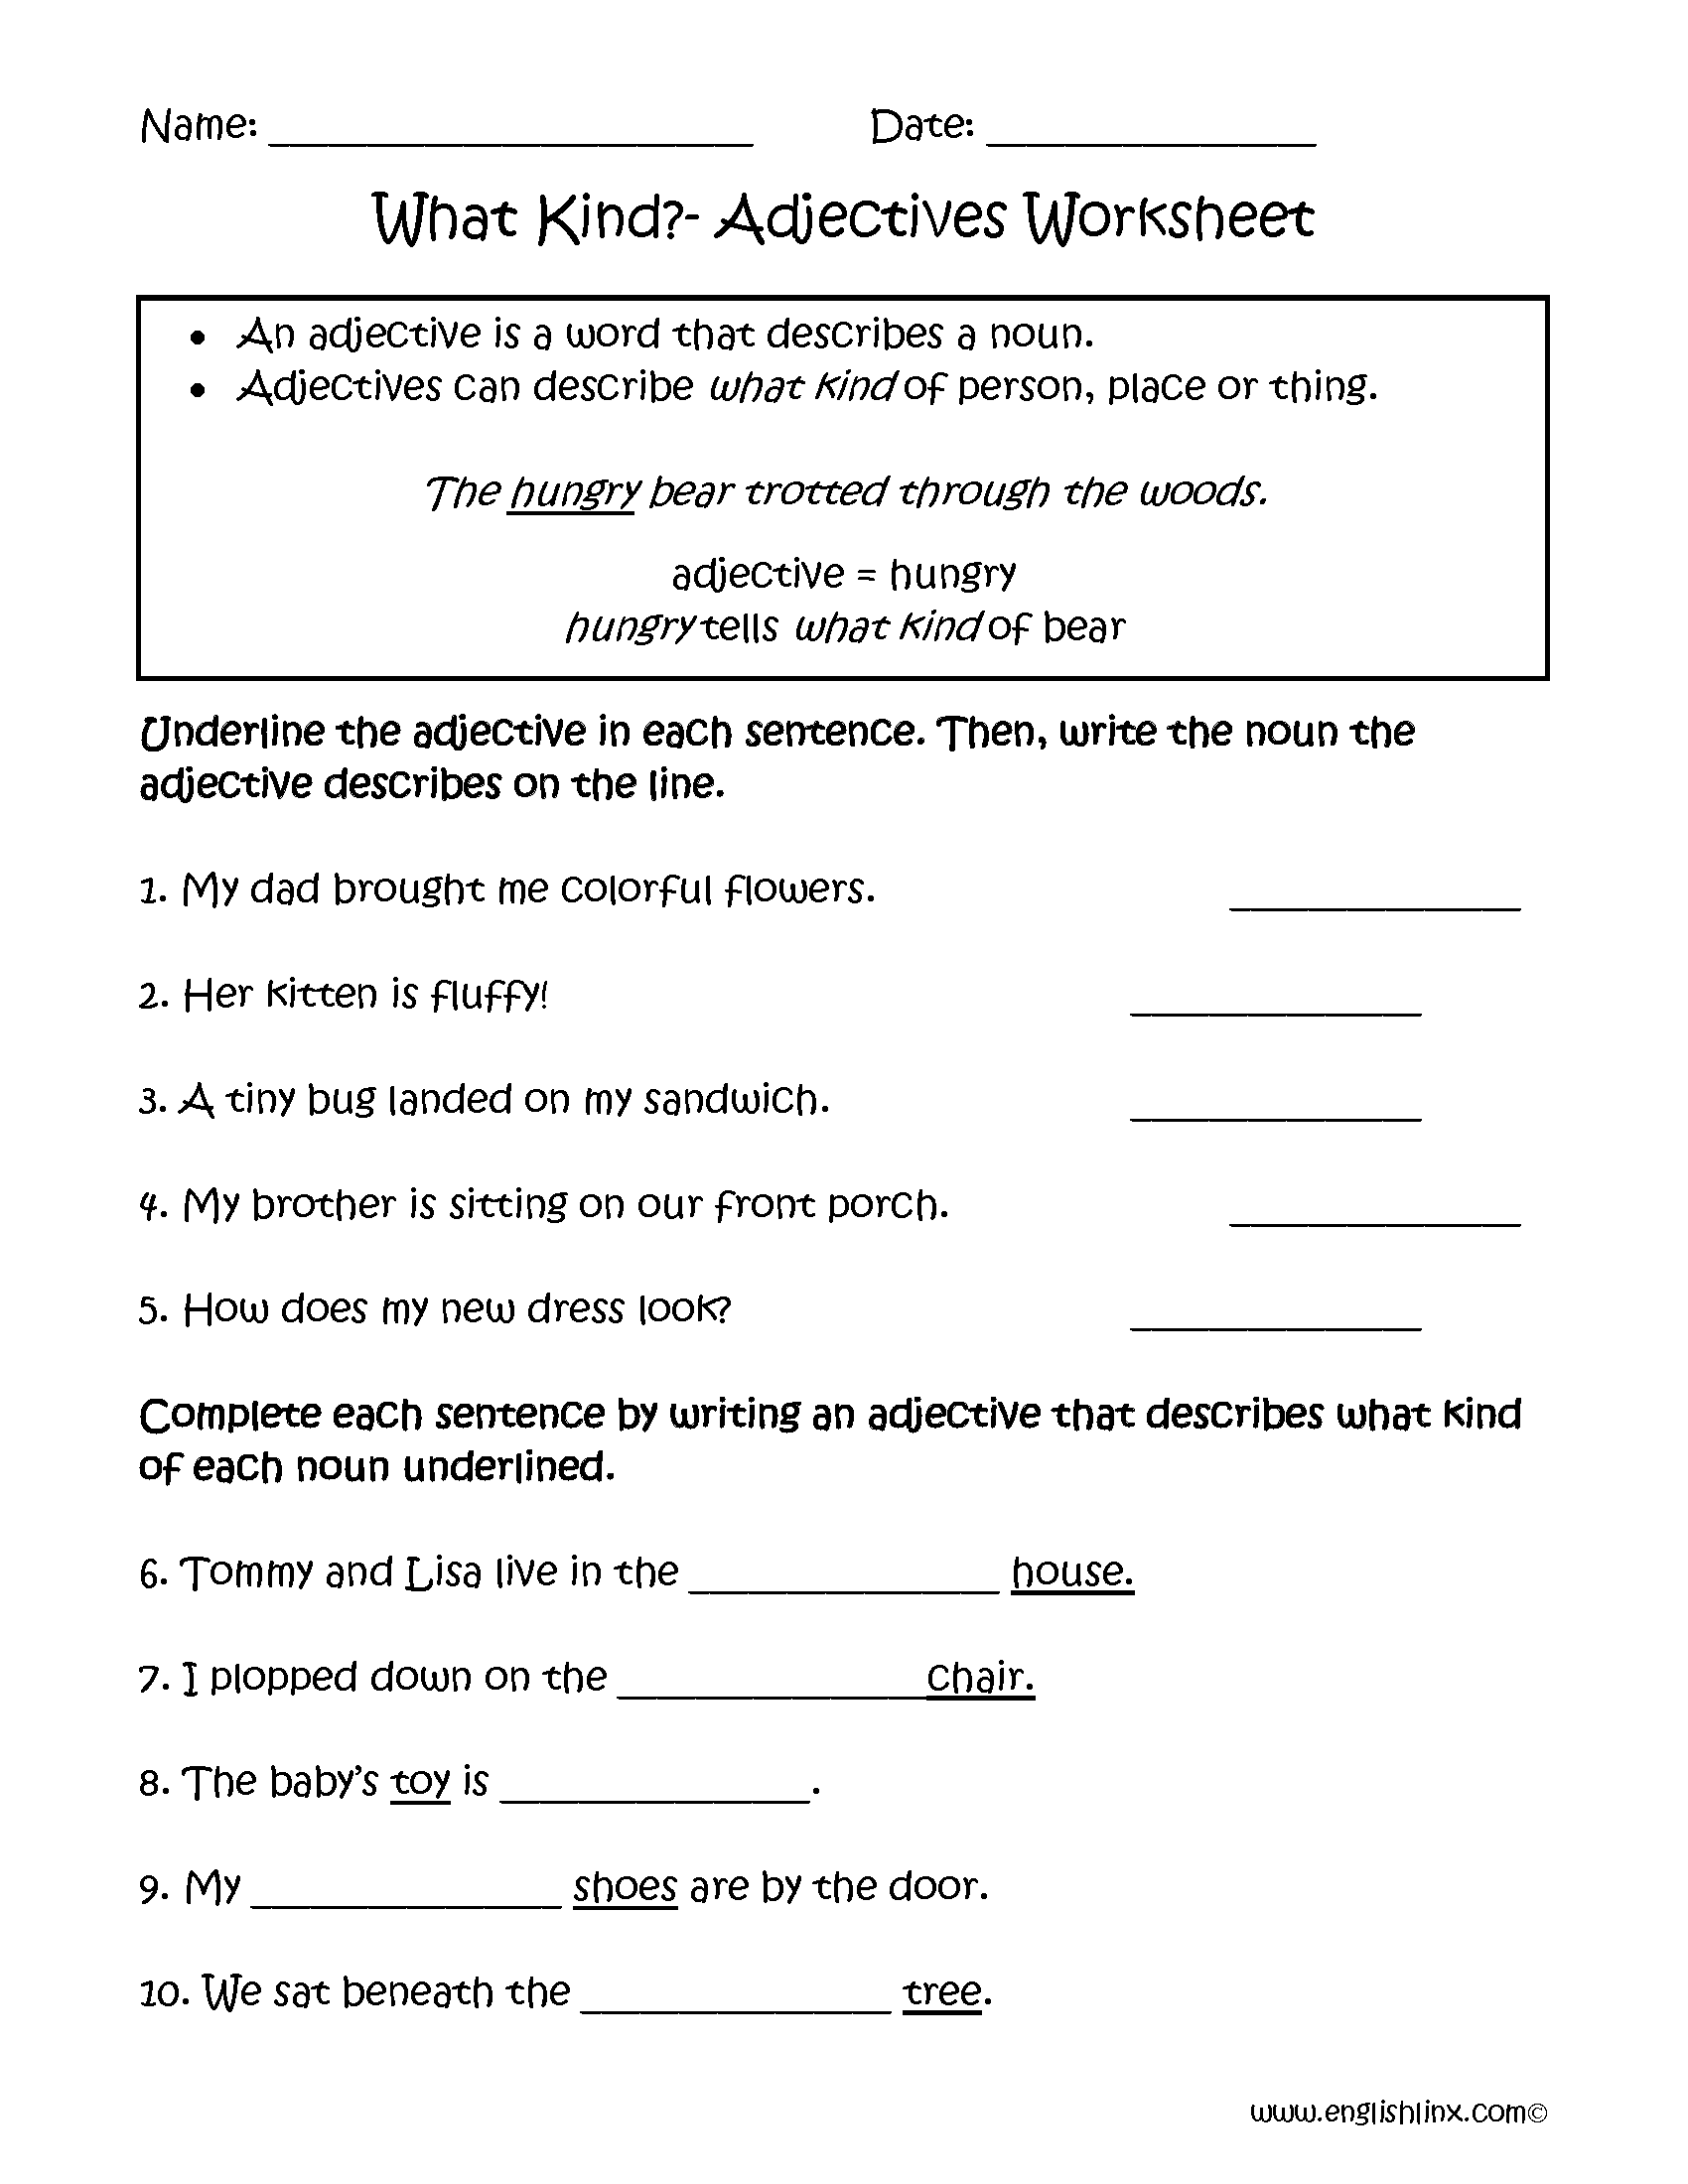 Worksheets Worksheet-adjectives adjectives worksheets regular worksheets